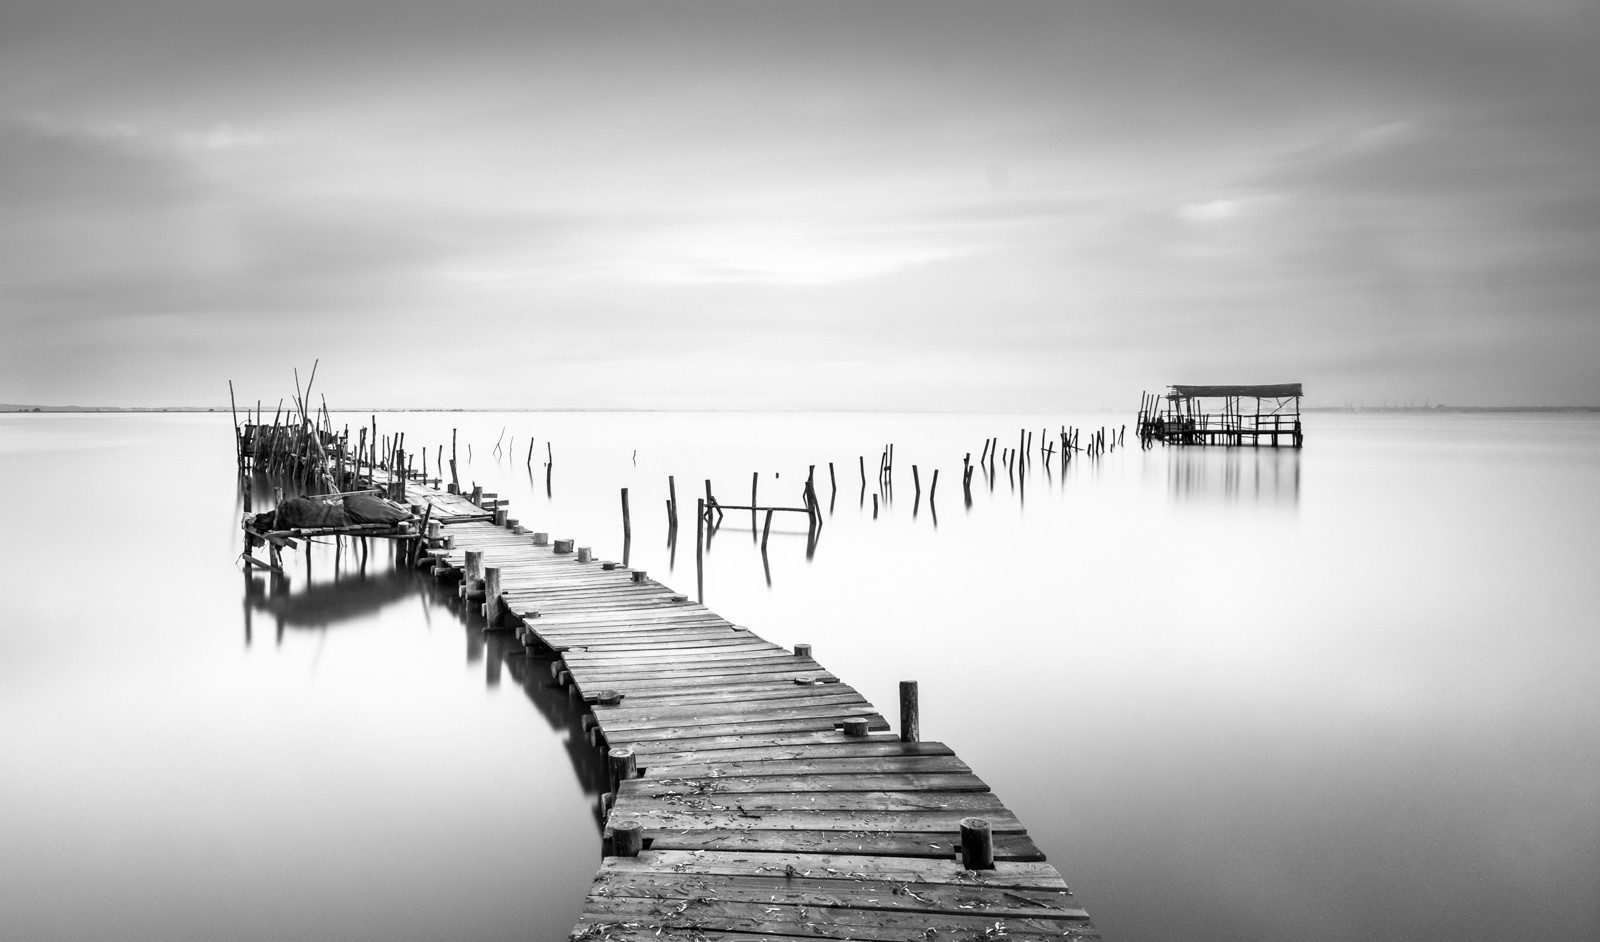 MONO - Carrasqueira by Hugh Rooney (18 marks)